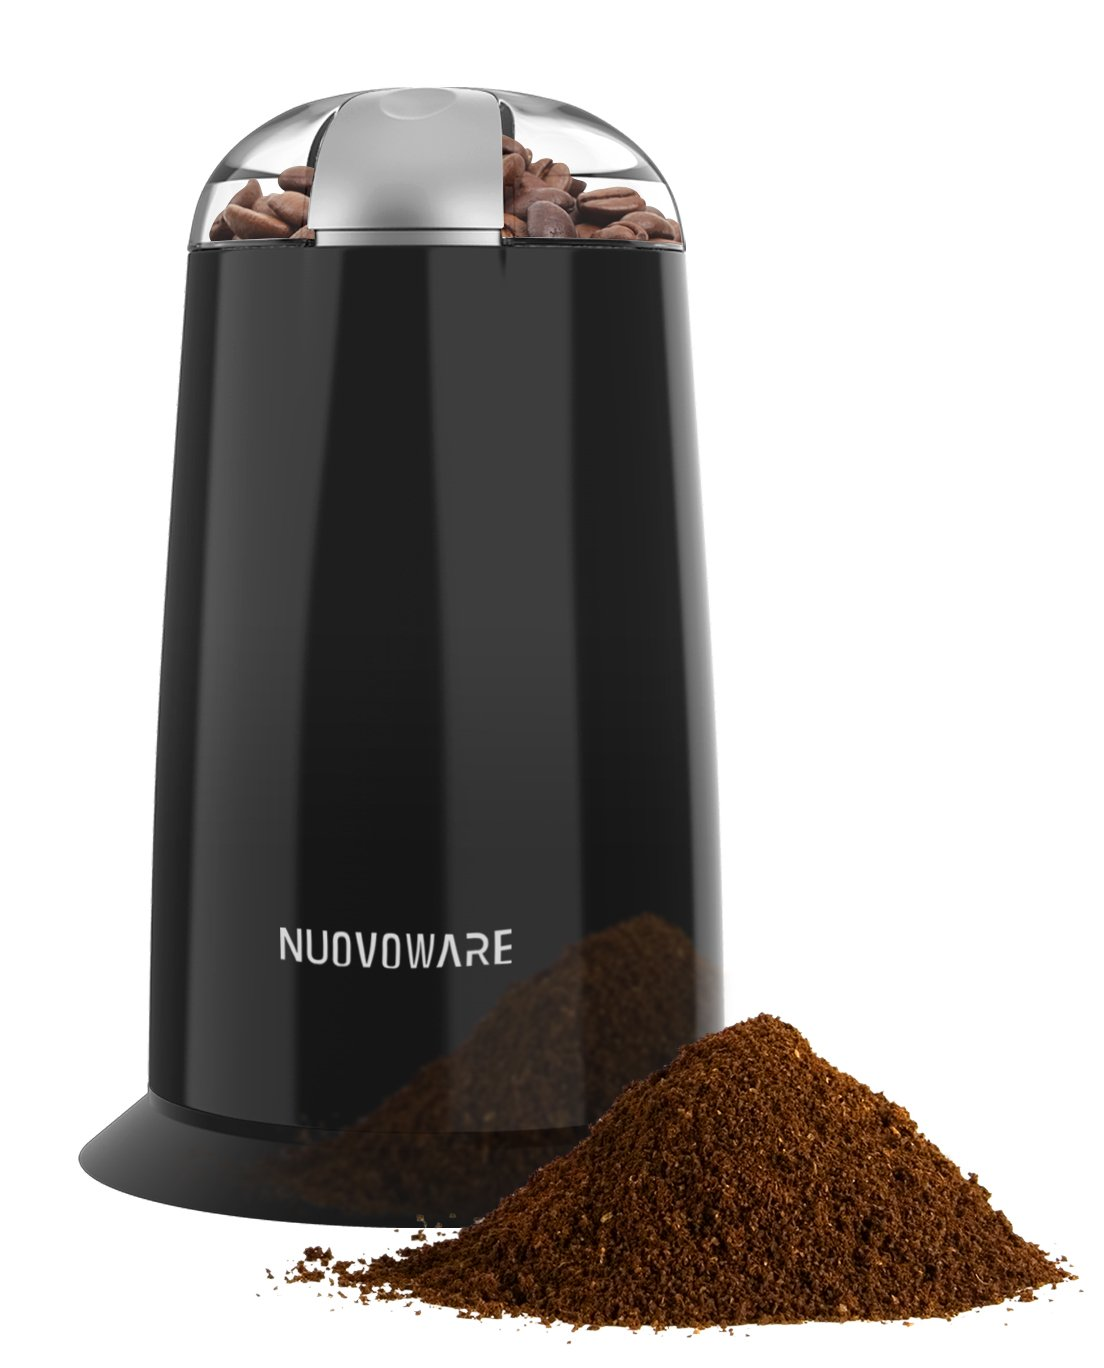 Nuovoware Coffee Grinder, Automatic Premium Electric Spice & Coffee Grinder with Stainless Steel Blades and Transparent Lid, Black by Nuovoware